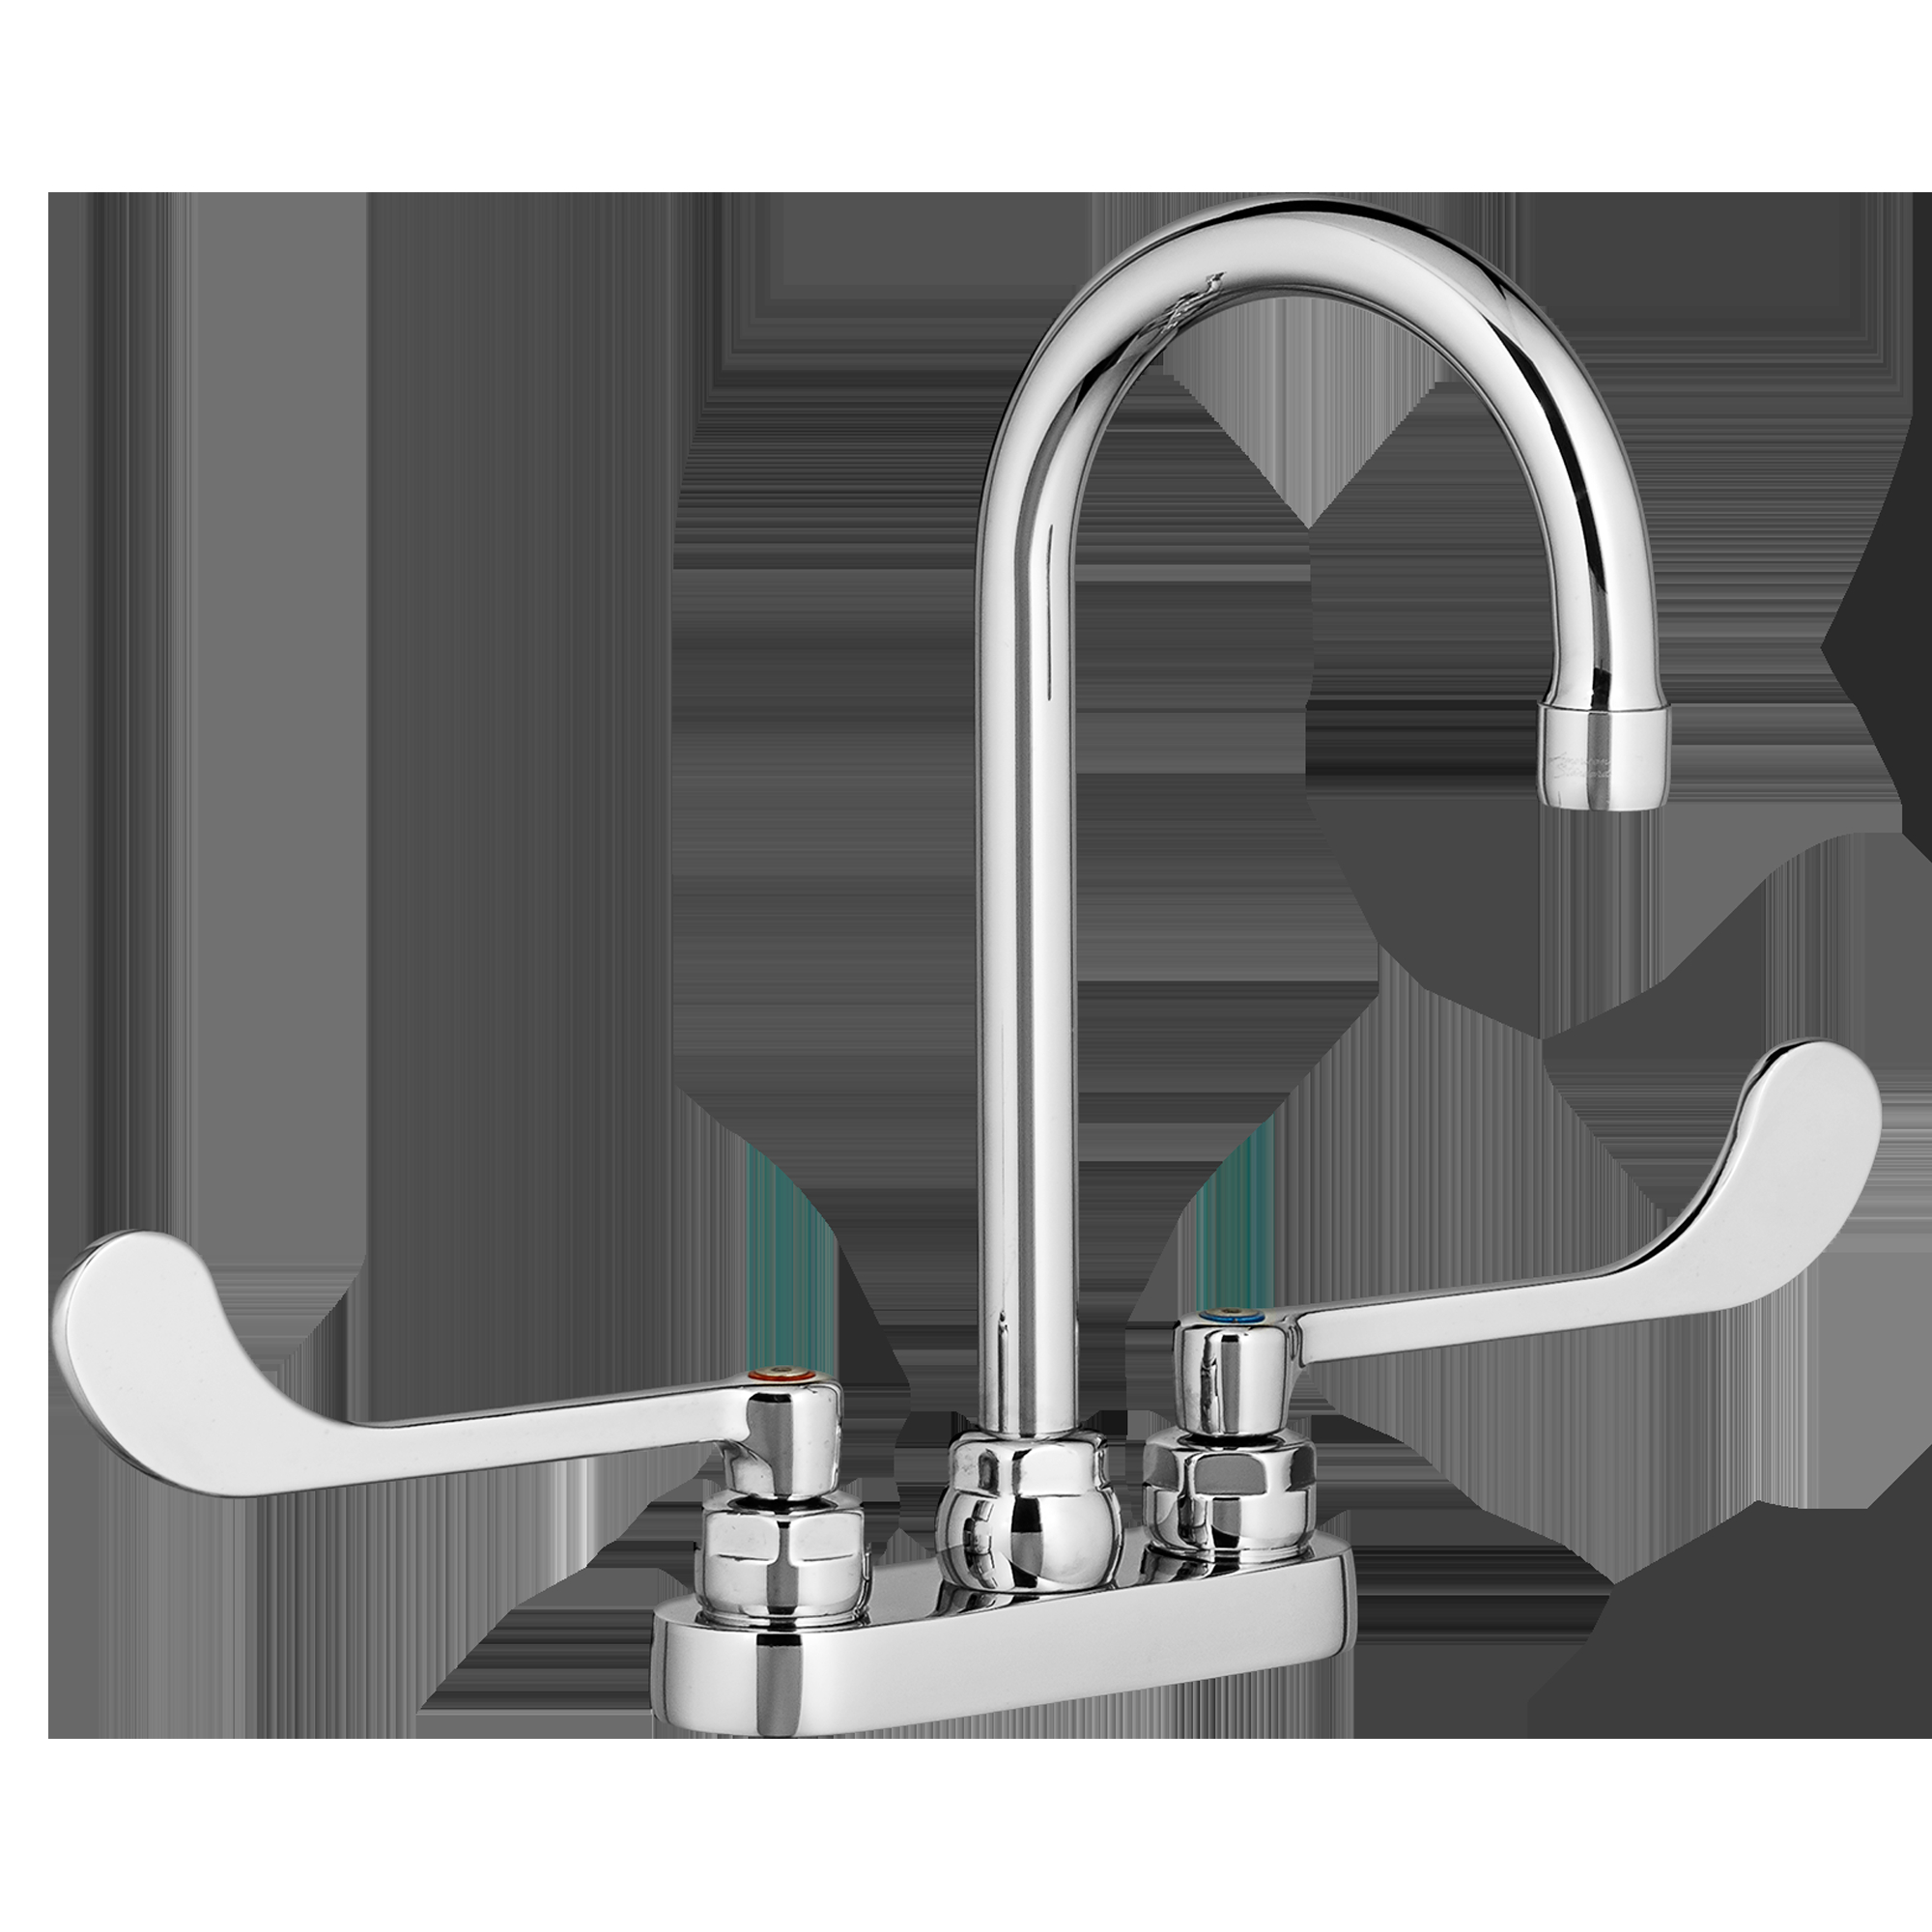 Monterrey Centerset Bathroom Faucet American Standard intended for dimensions 2000 X 2000